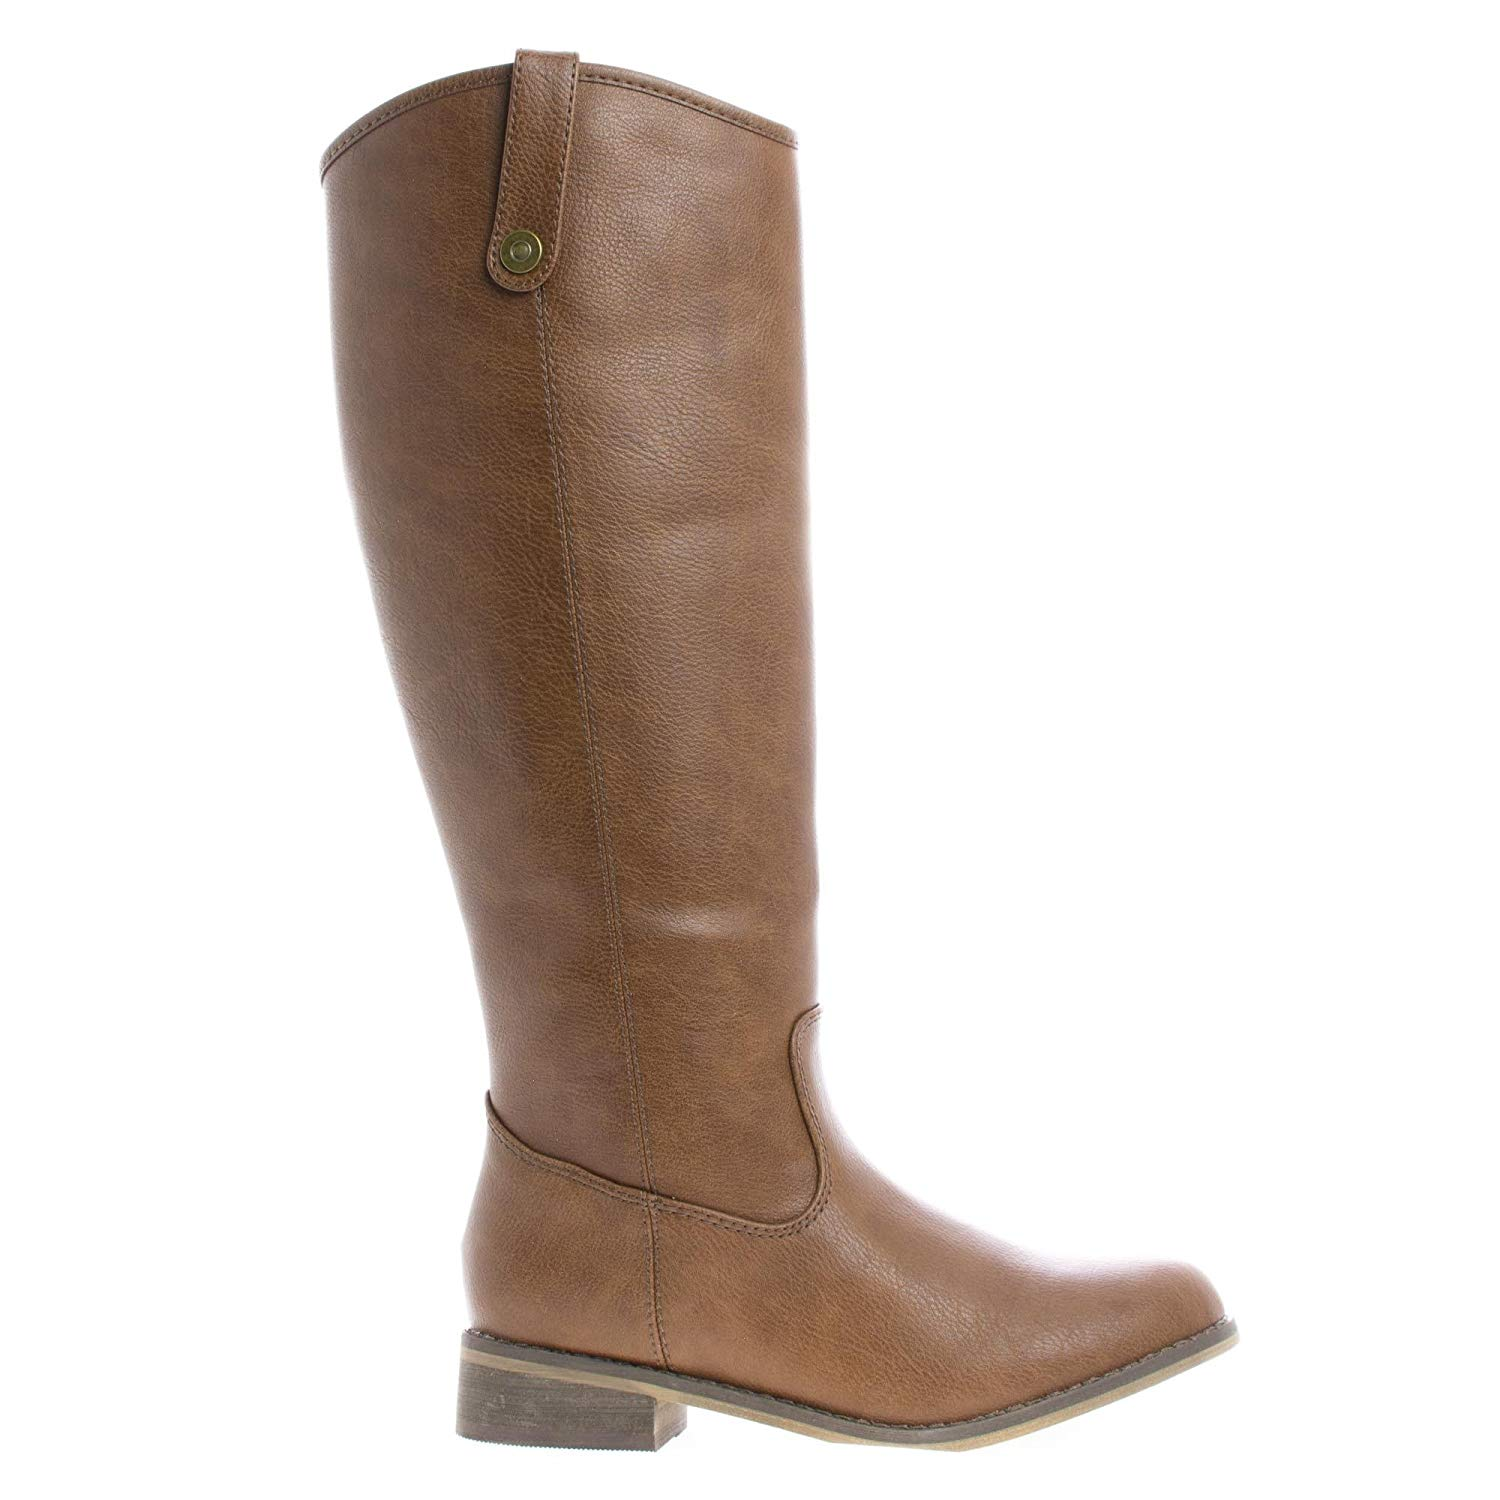 Knee High Almond Toe Western Faux Wooden Heel Riding Boots